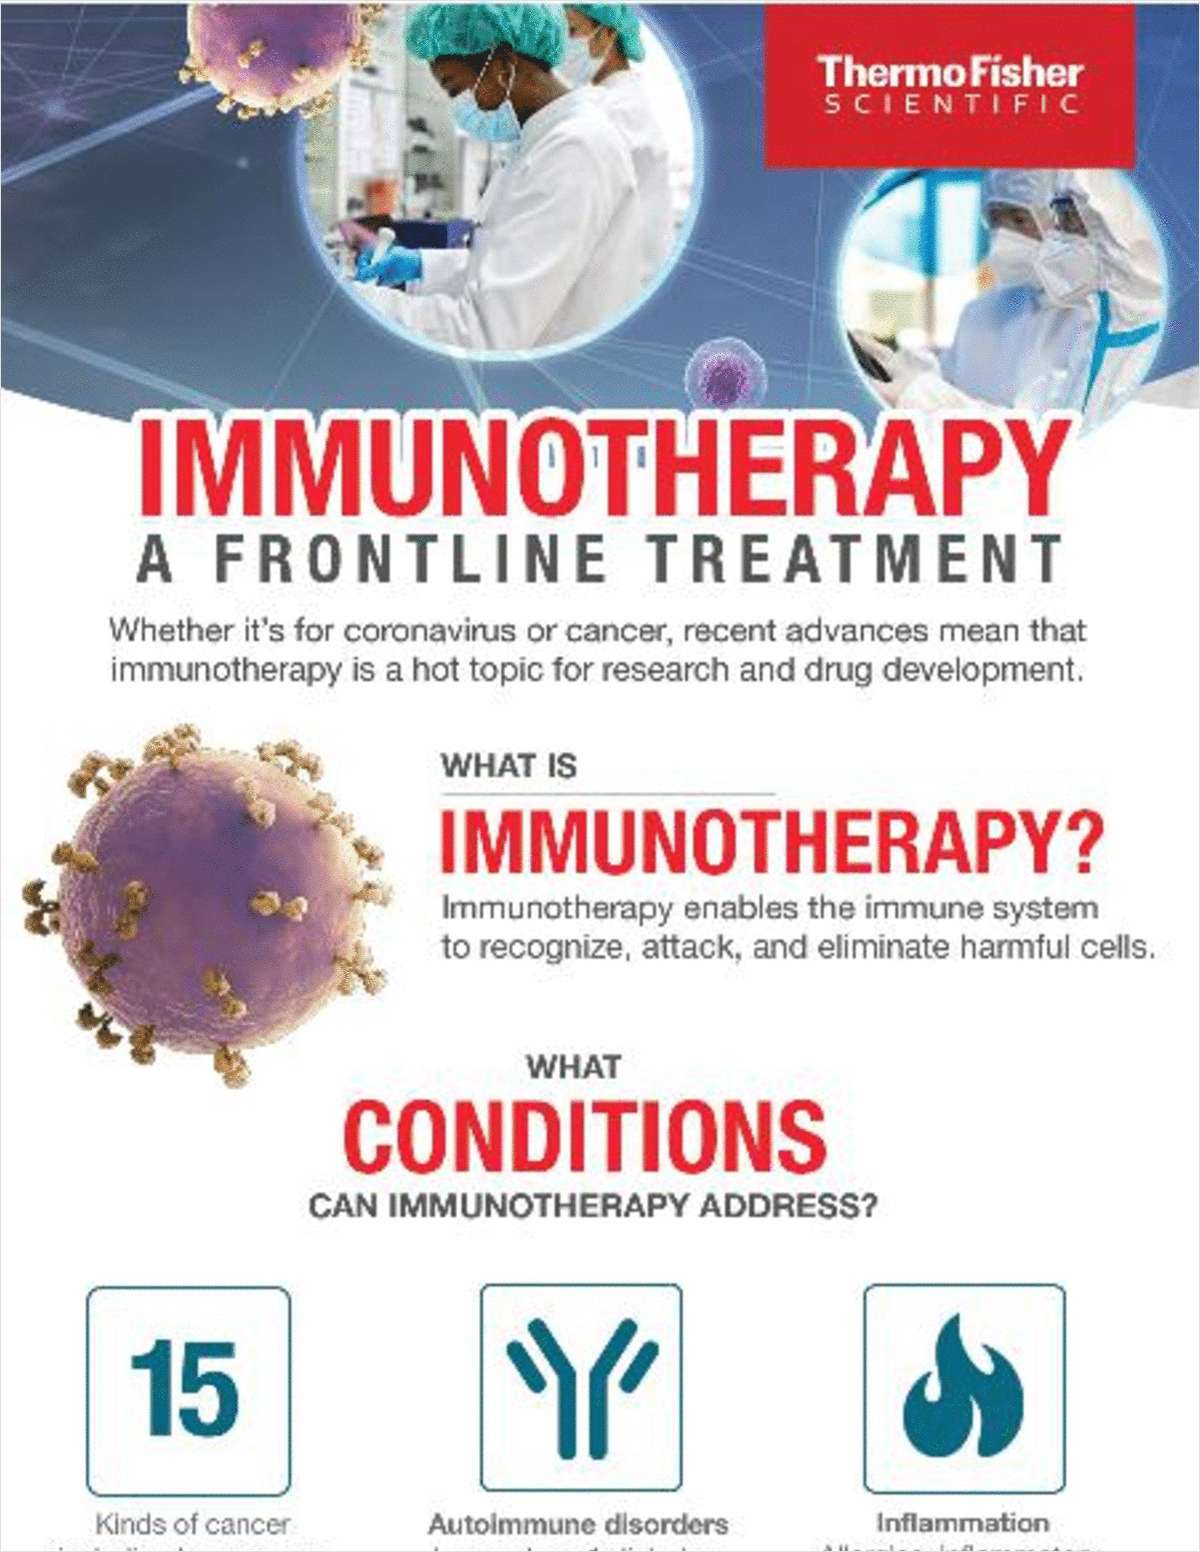 Immunotherapy: A Frontline Treatment